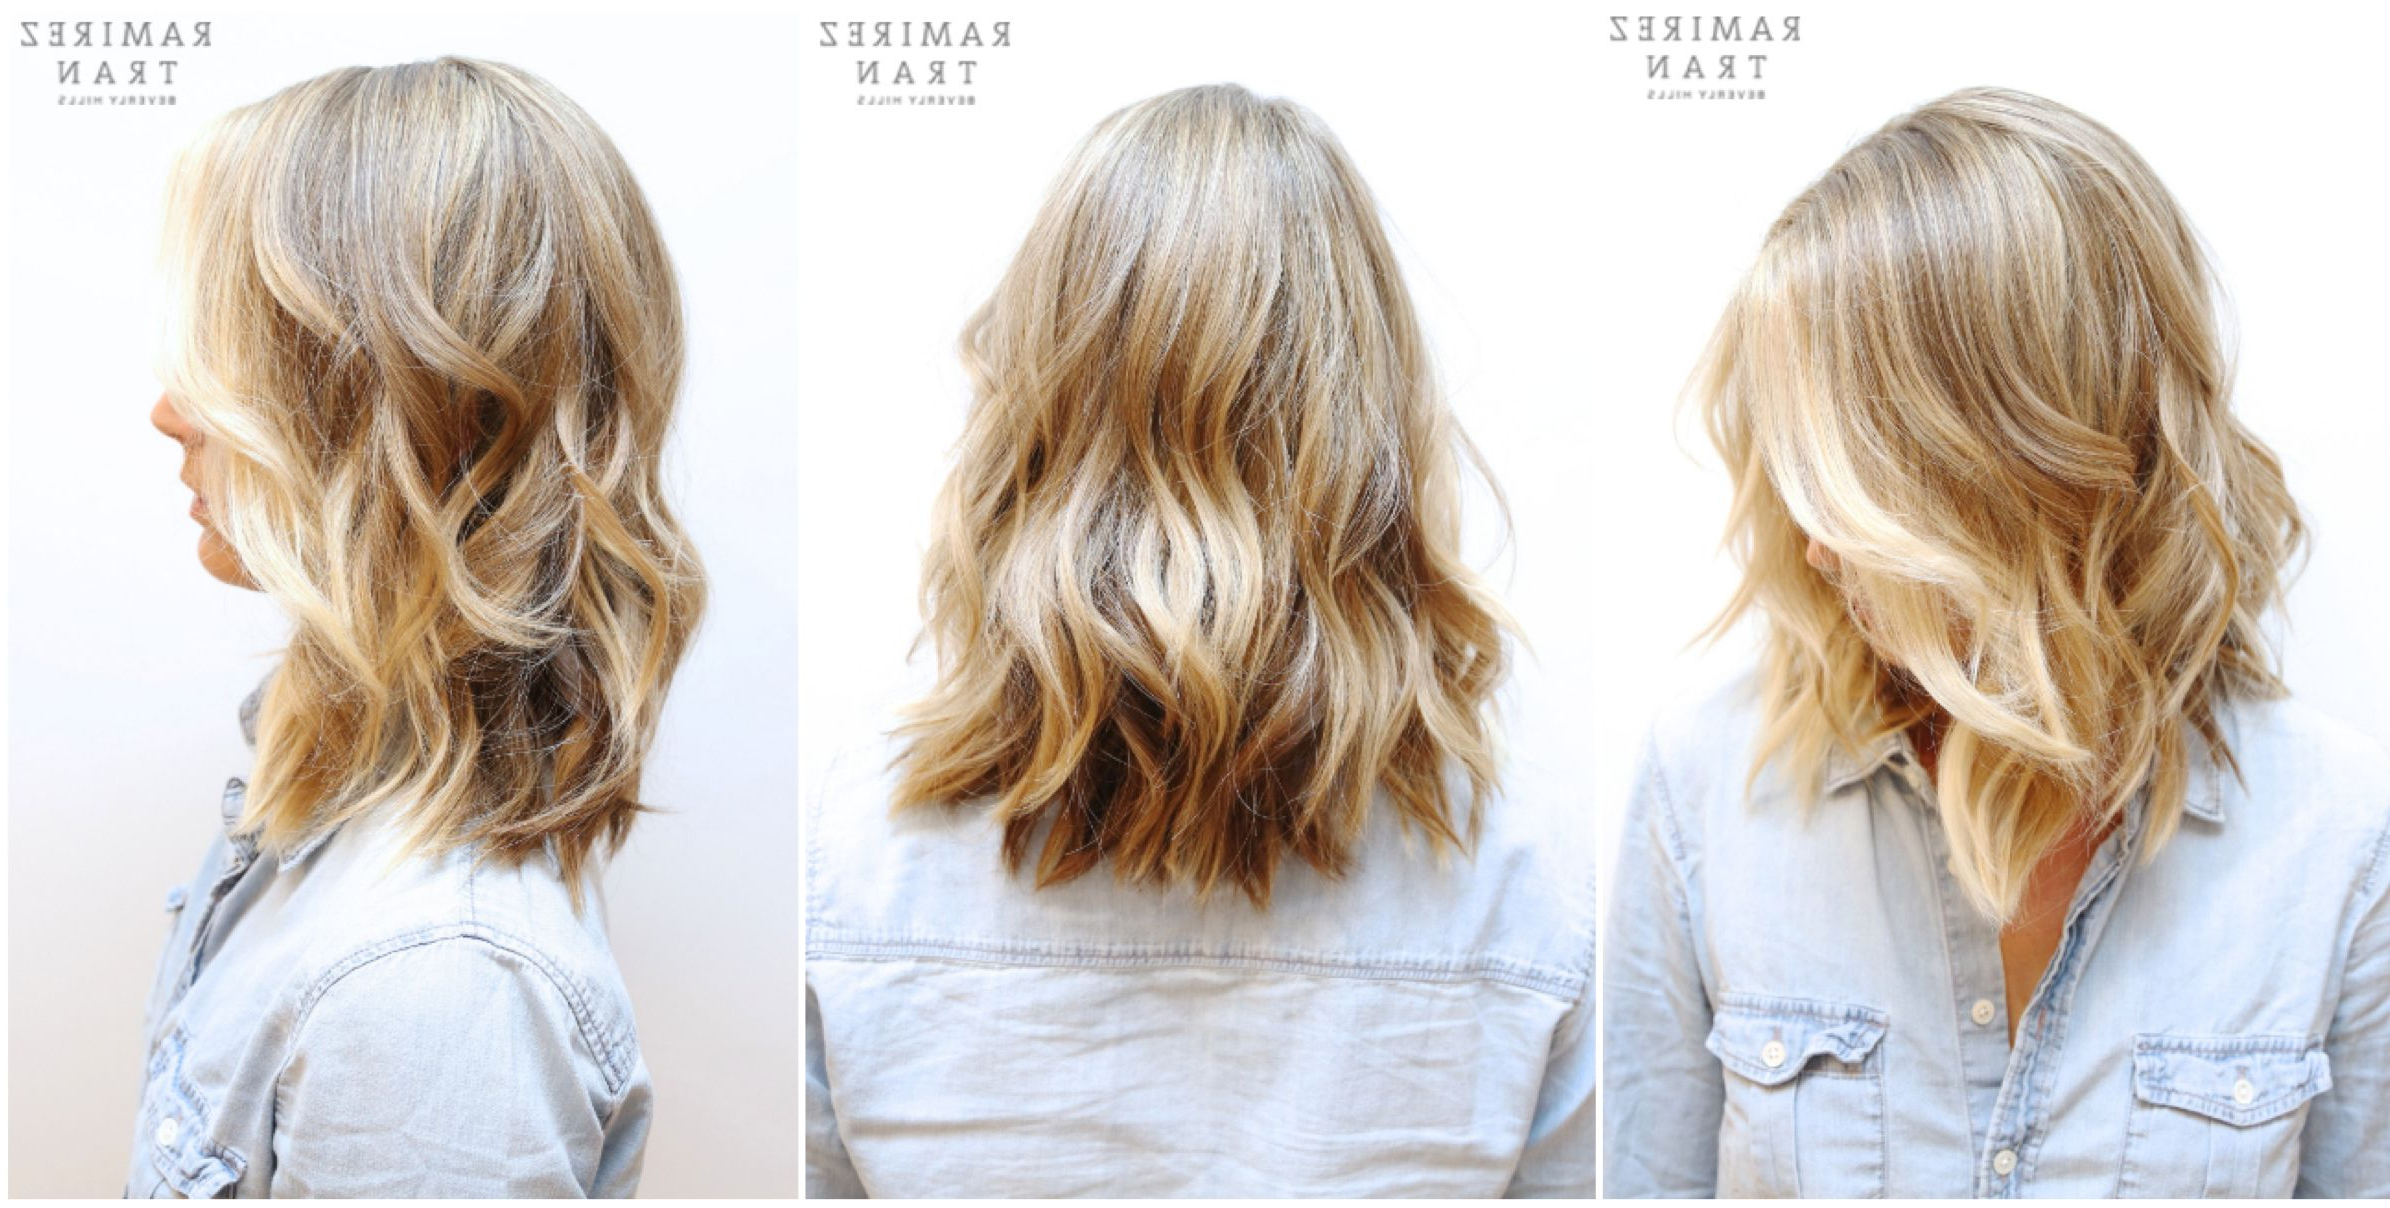 A Natural Looking Beige Blonde Base With Bright Buttery Blonde Regarding Short Bob Hairstyles With Piece Y Layers And Babylights (View 13 of 20)